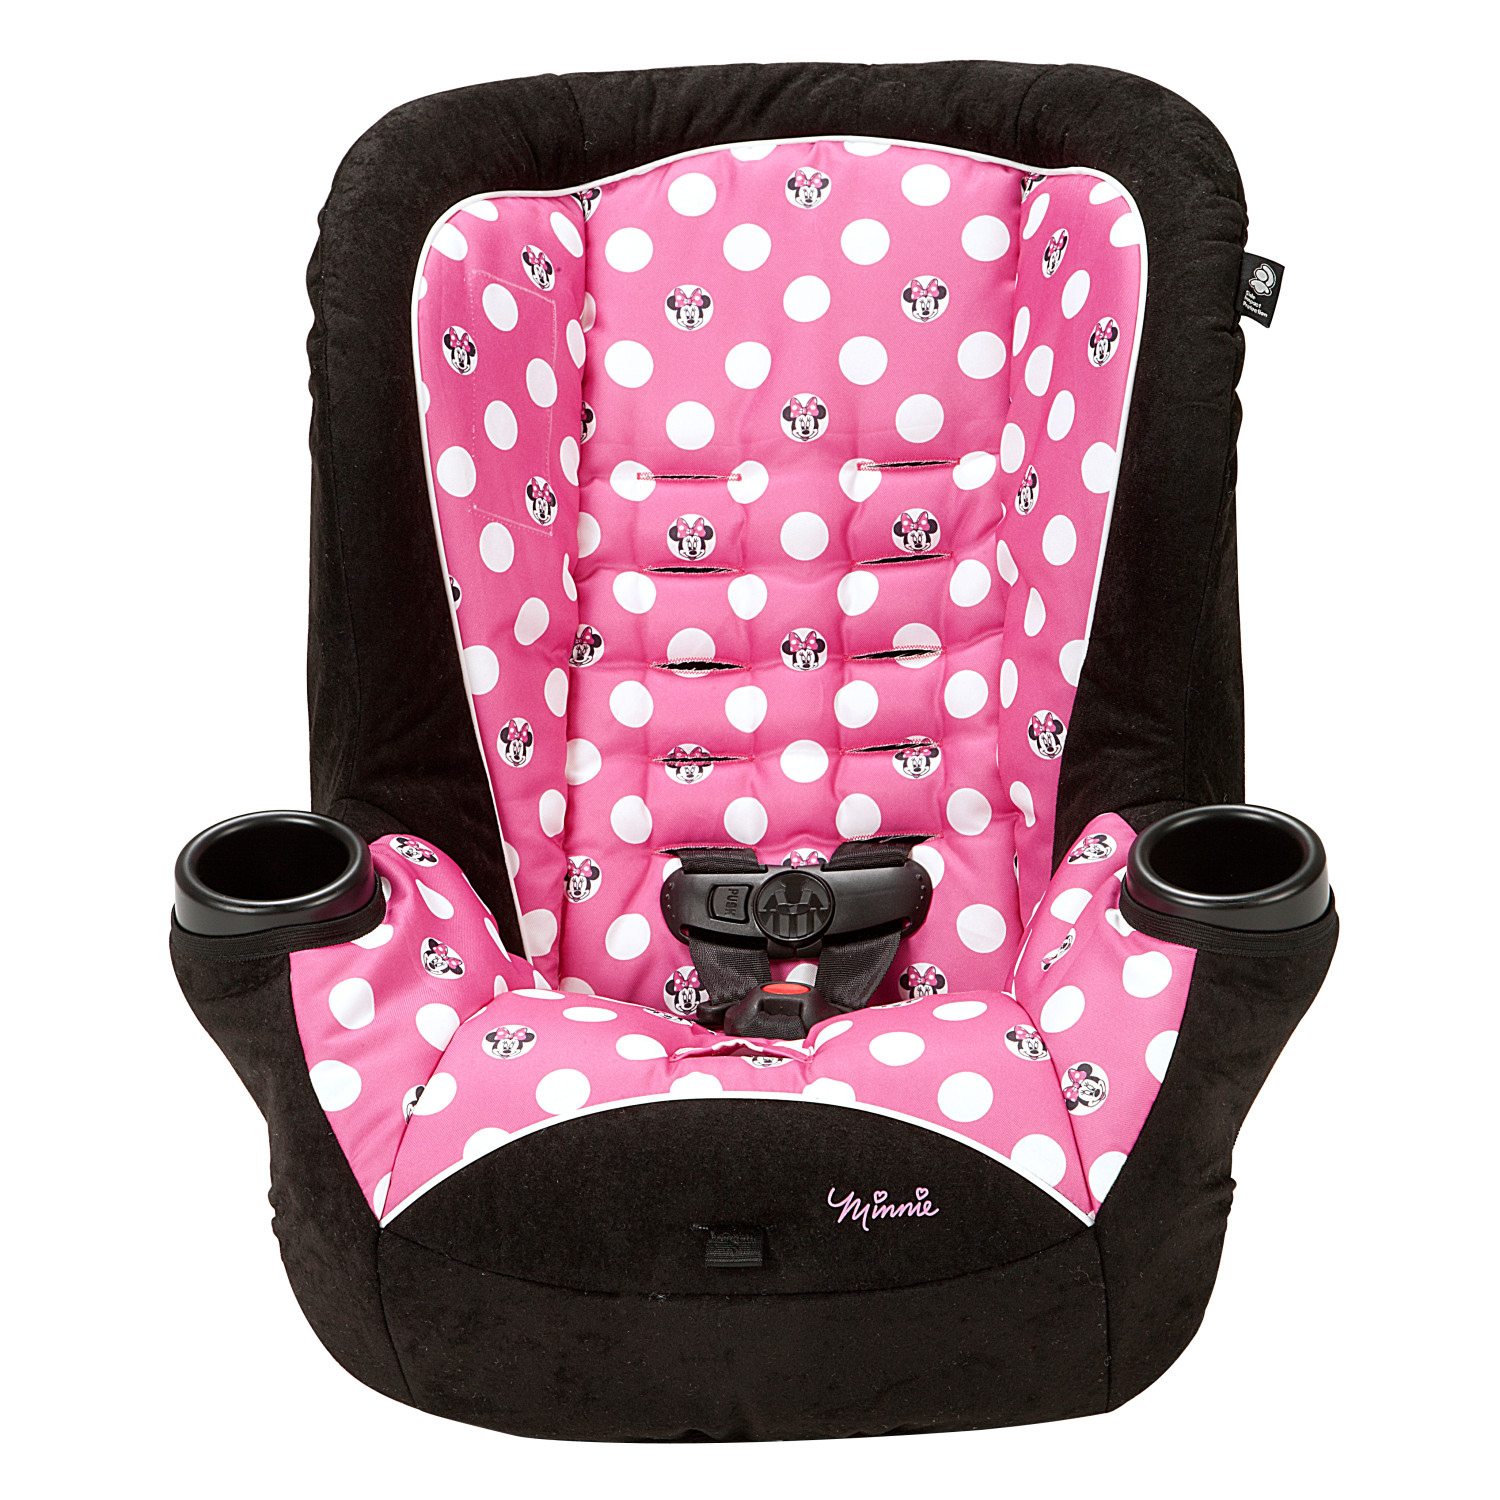 Minnie Mouseketeer Convertible Car Seat